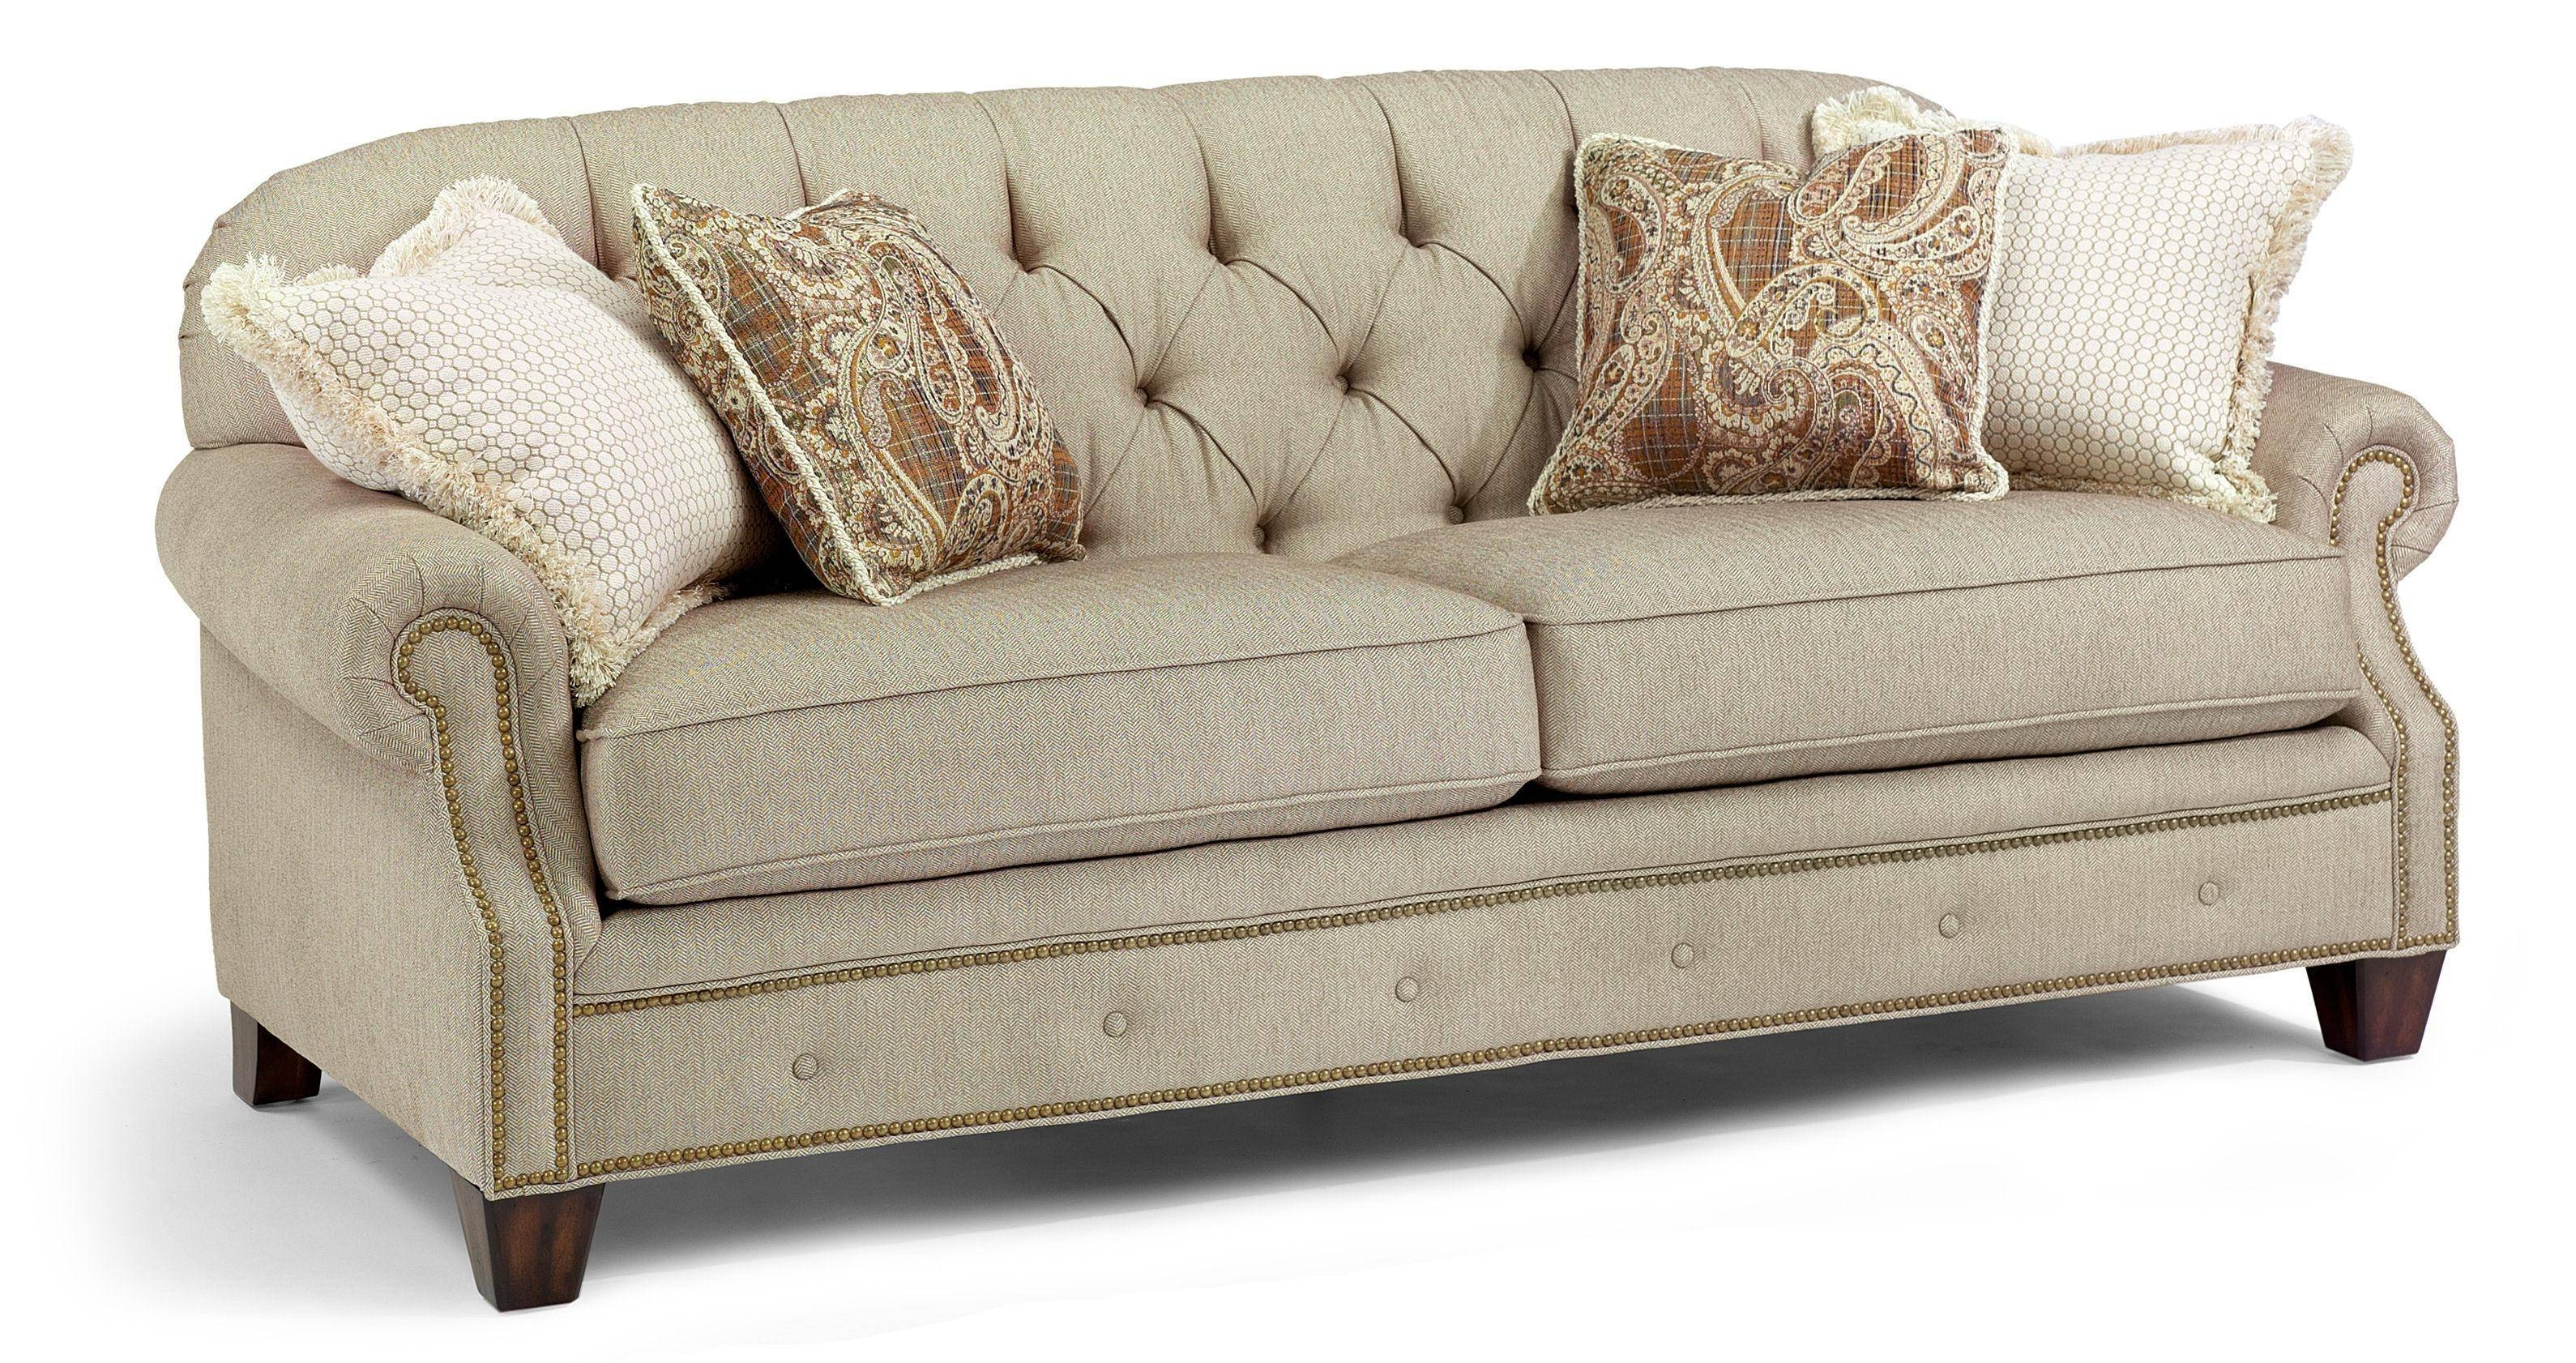 20 Best Collection Of Alan White Couches | Sofa Ideas inside Alan White Couches (Image 7 of 15)